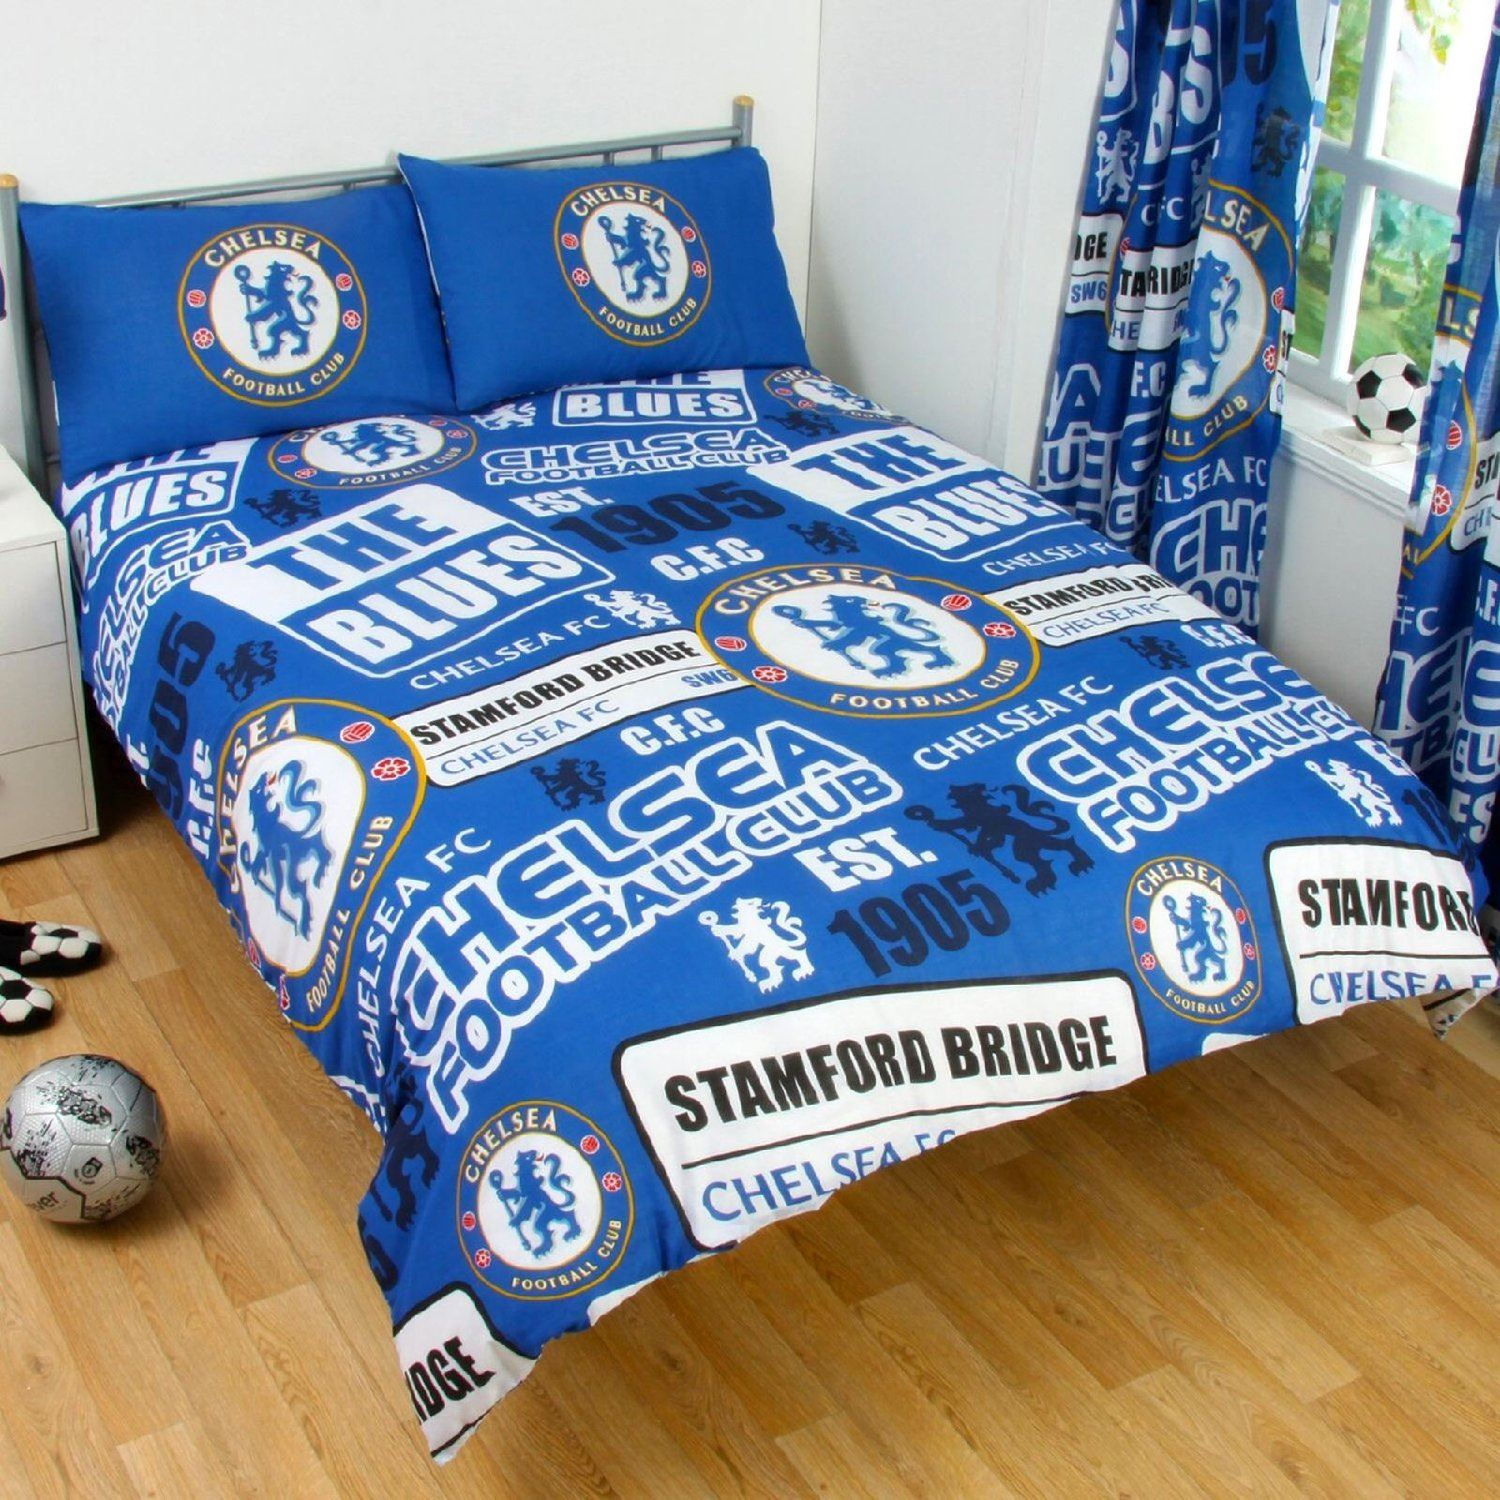 Chelsea Bedroom Chelsea Bedroom Bedside Extension For Bed: OFFICIAL CHELSEA Football Club Duvet Quilt Cover Bed Set